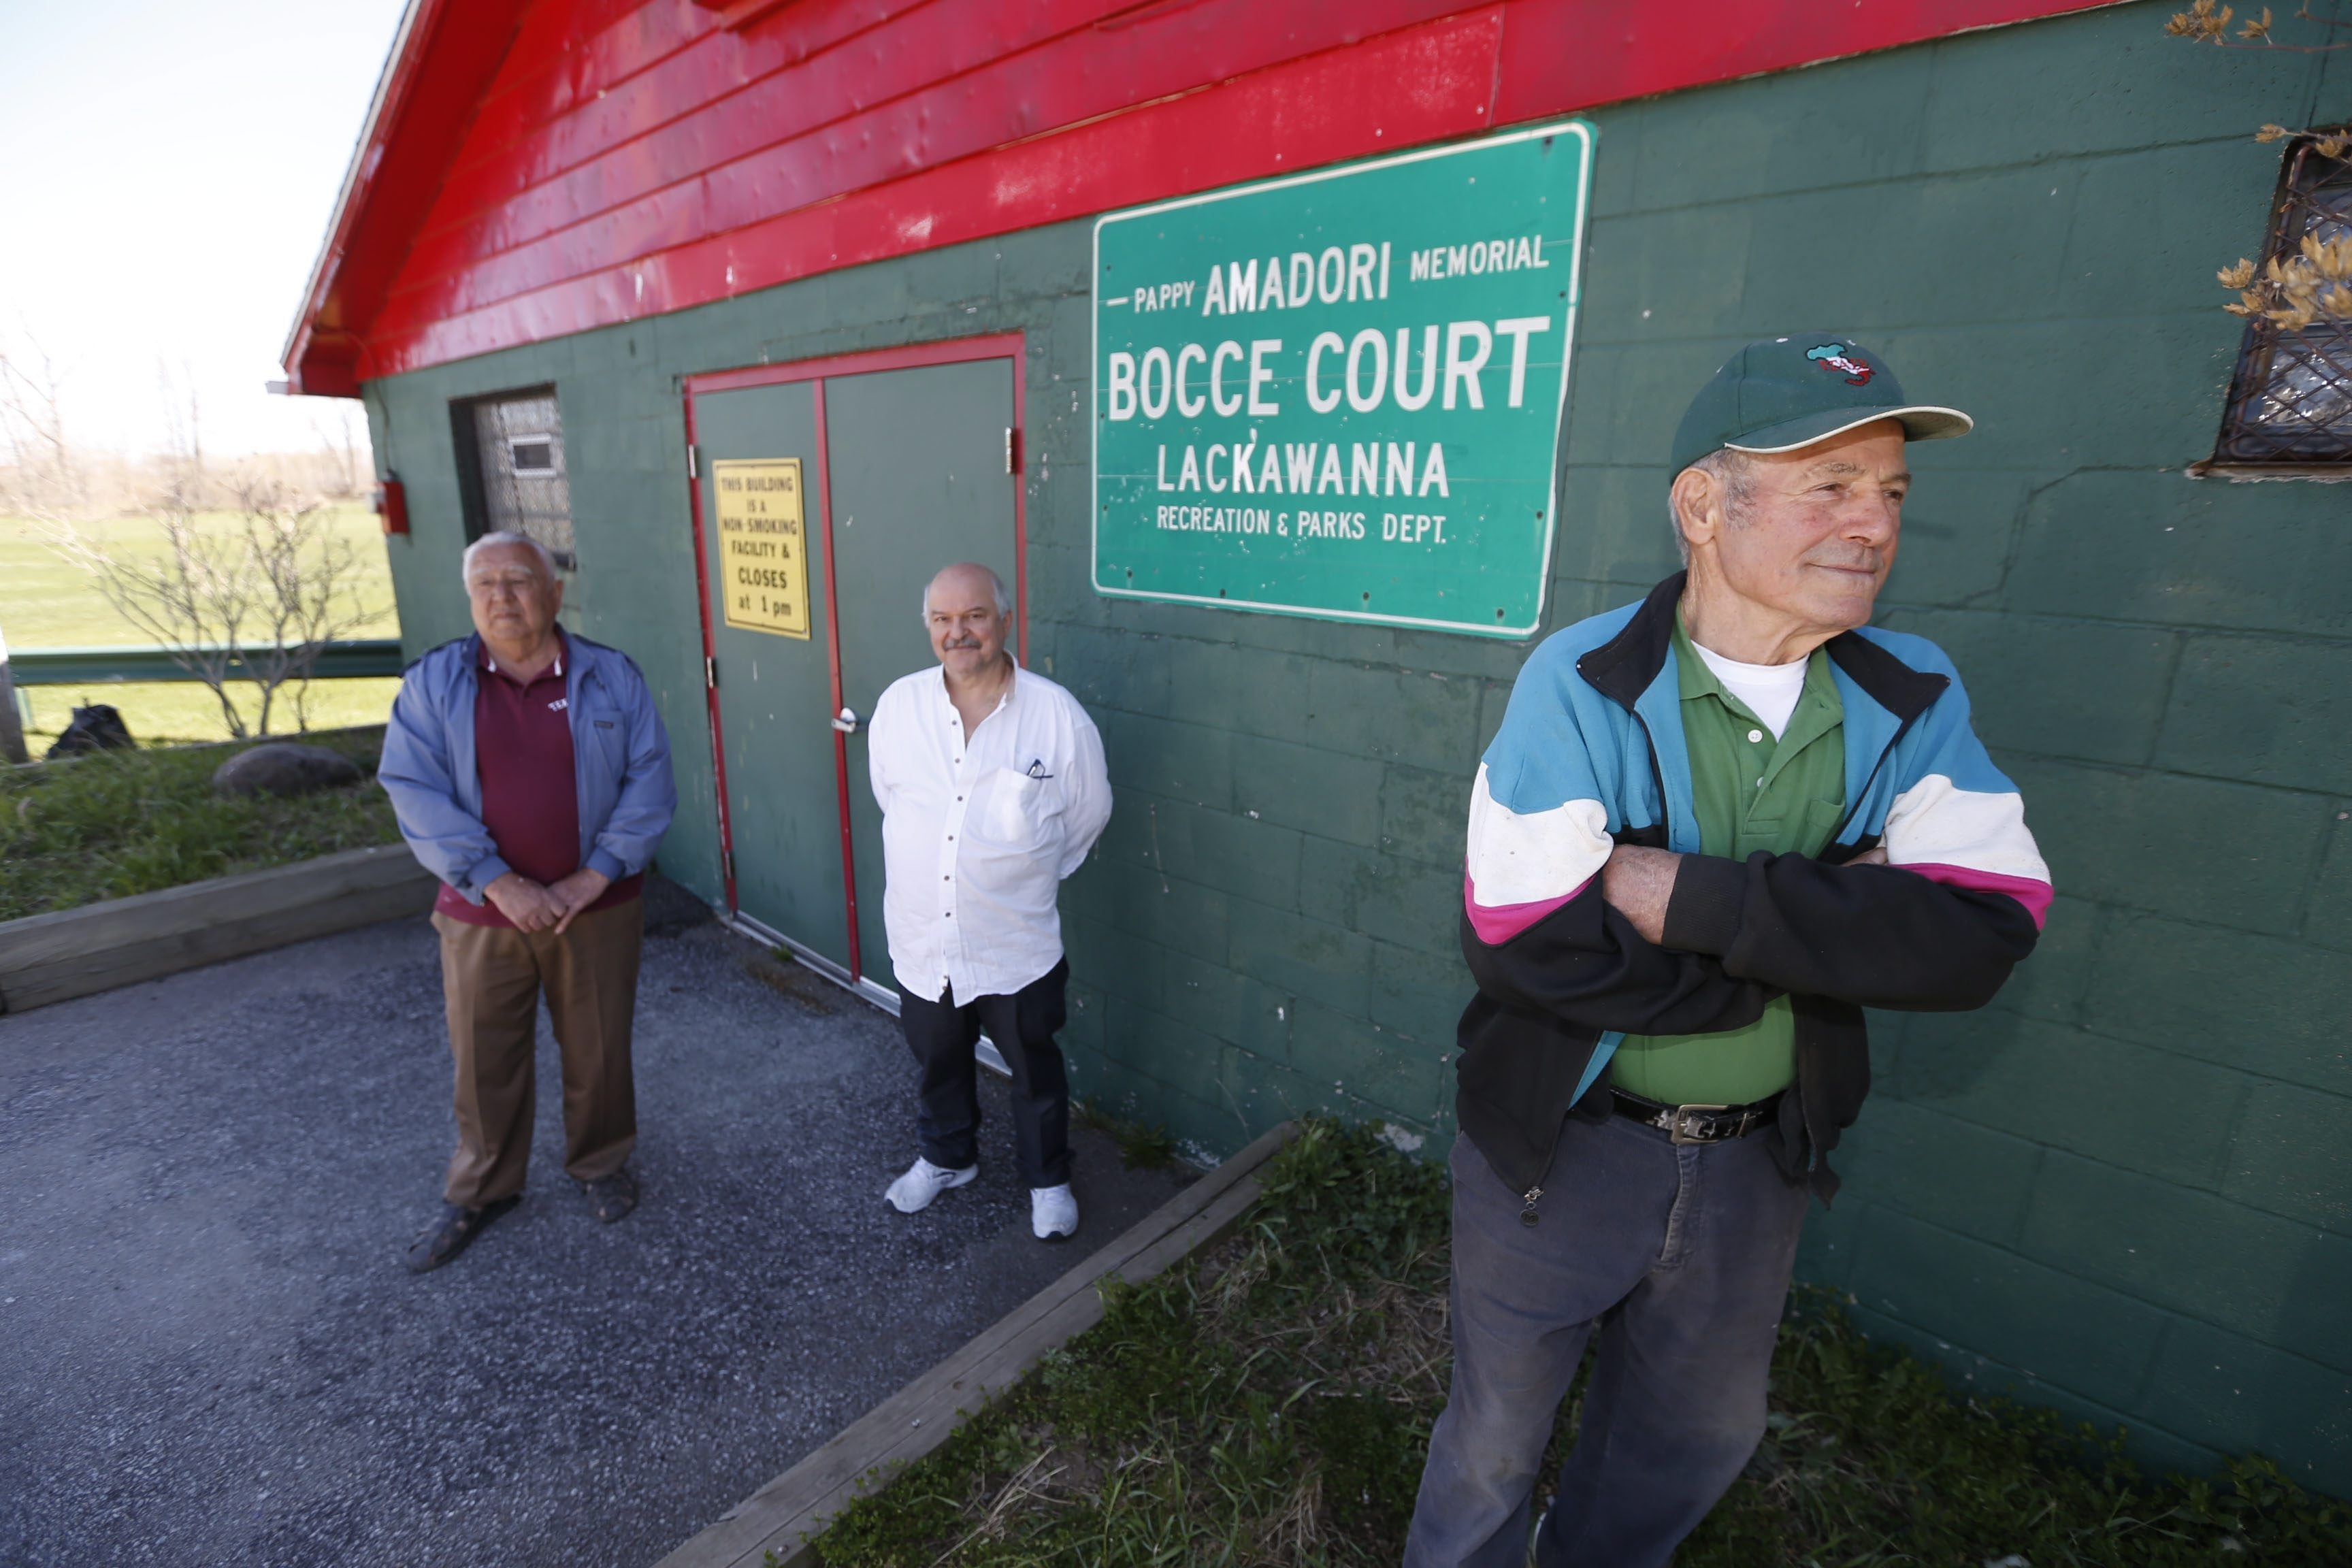 From left, Luigi Colafranceschi, Tom Collana and Remo Fischione stamd outside the now-closed Pappy Amadori Bocce Court on Madison Avenue in Lackawanna.